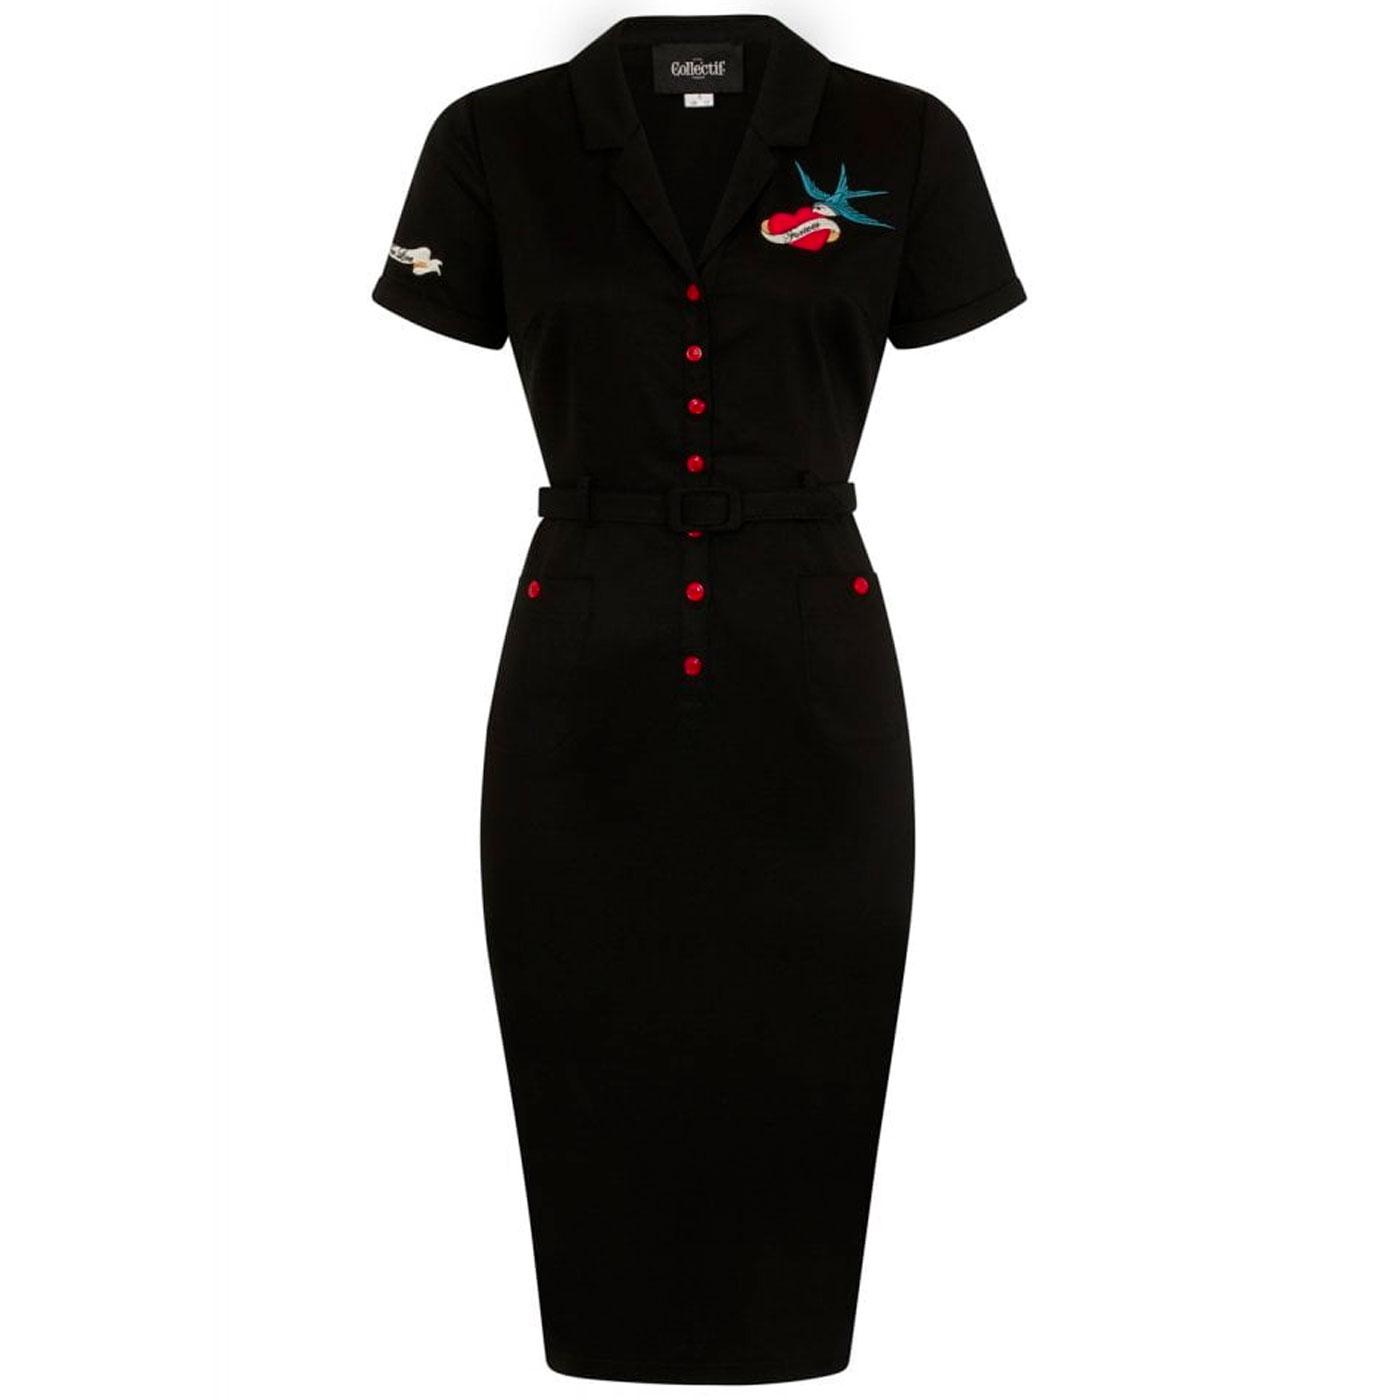 Caterina COLLECTIF True Love Tattoo Pencil Dress